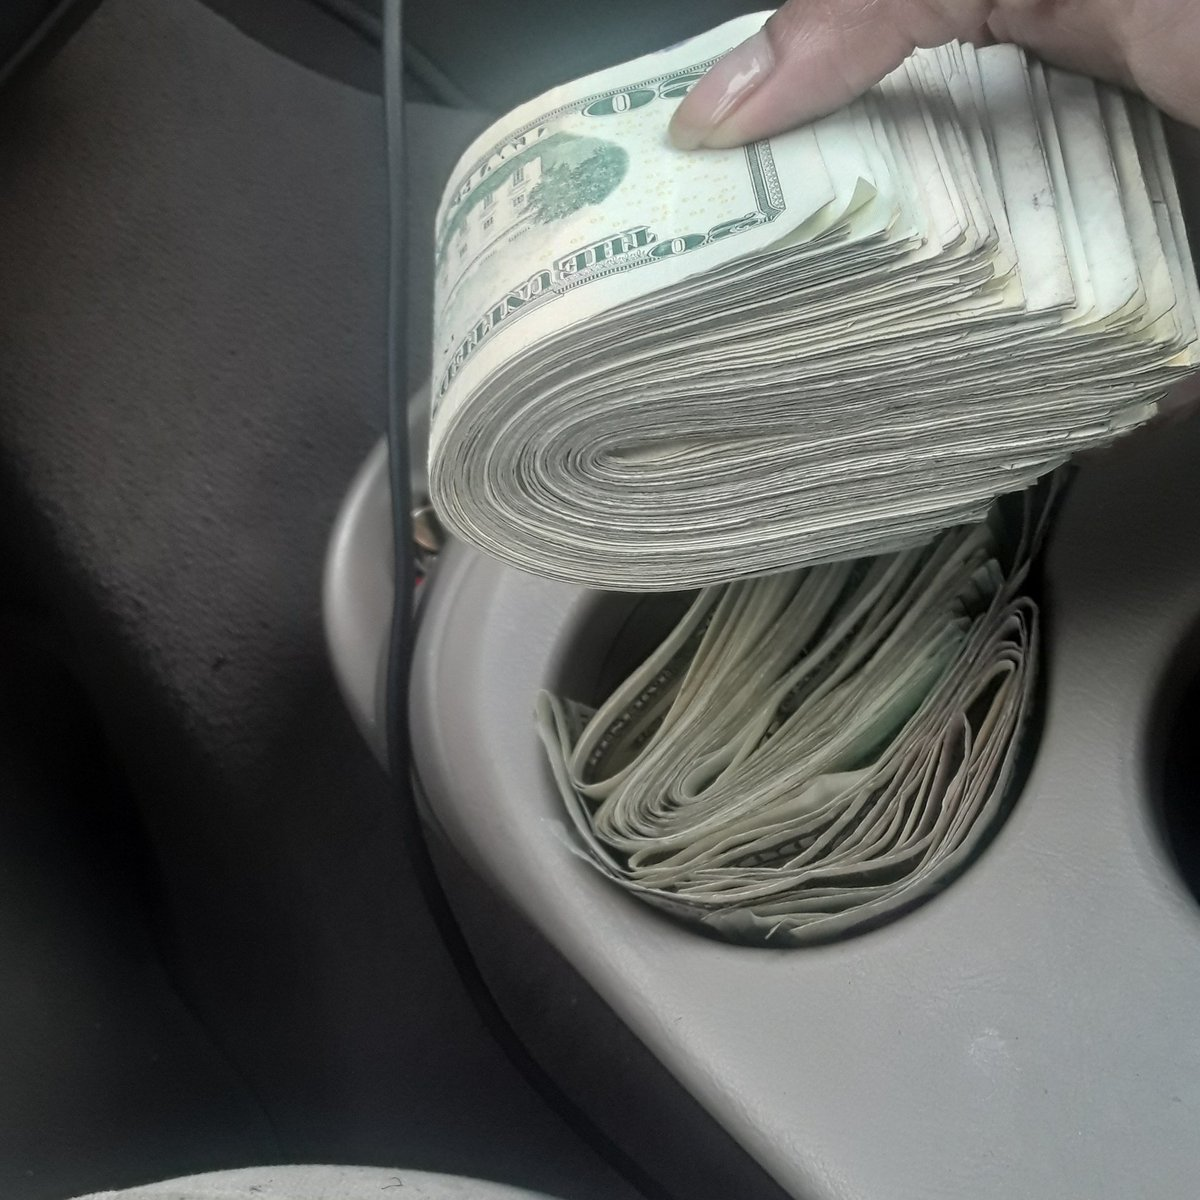 This stack was very hard to fold i was collecting my money richforlife